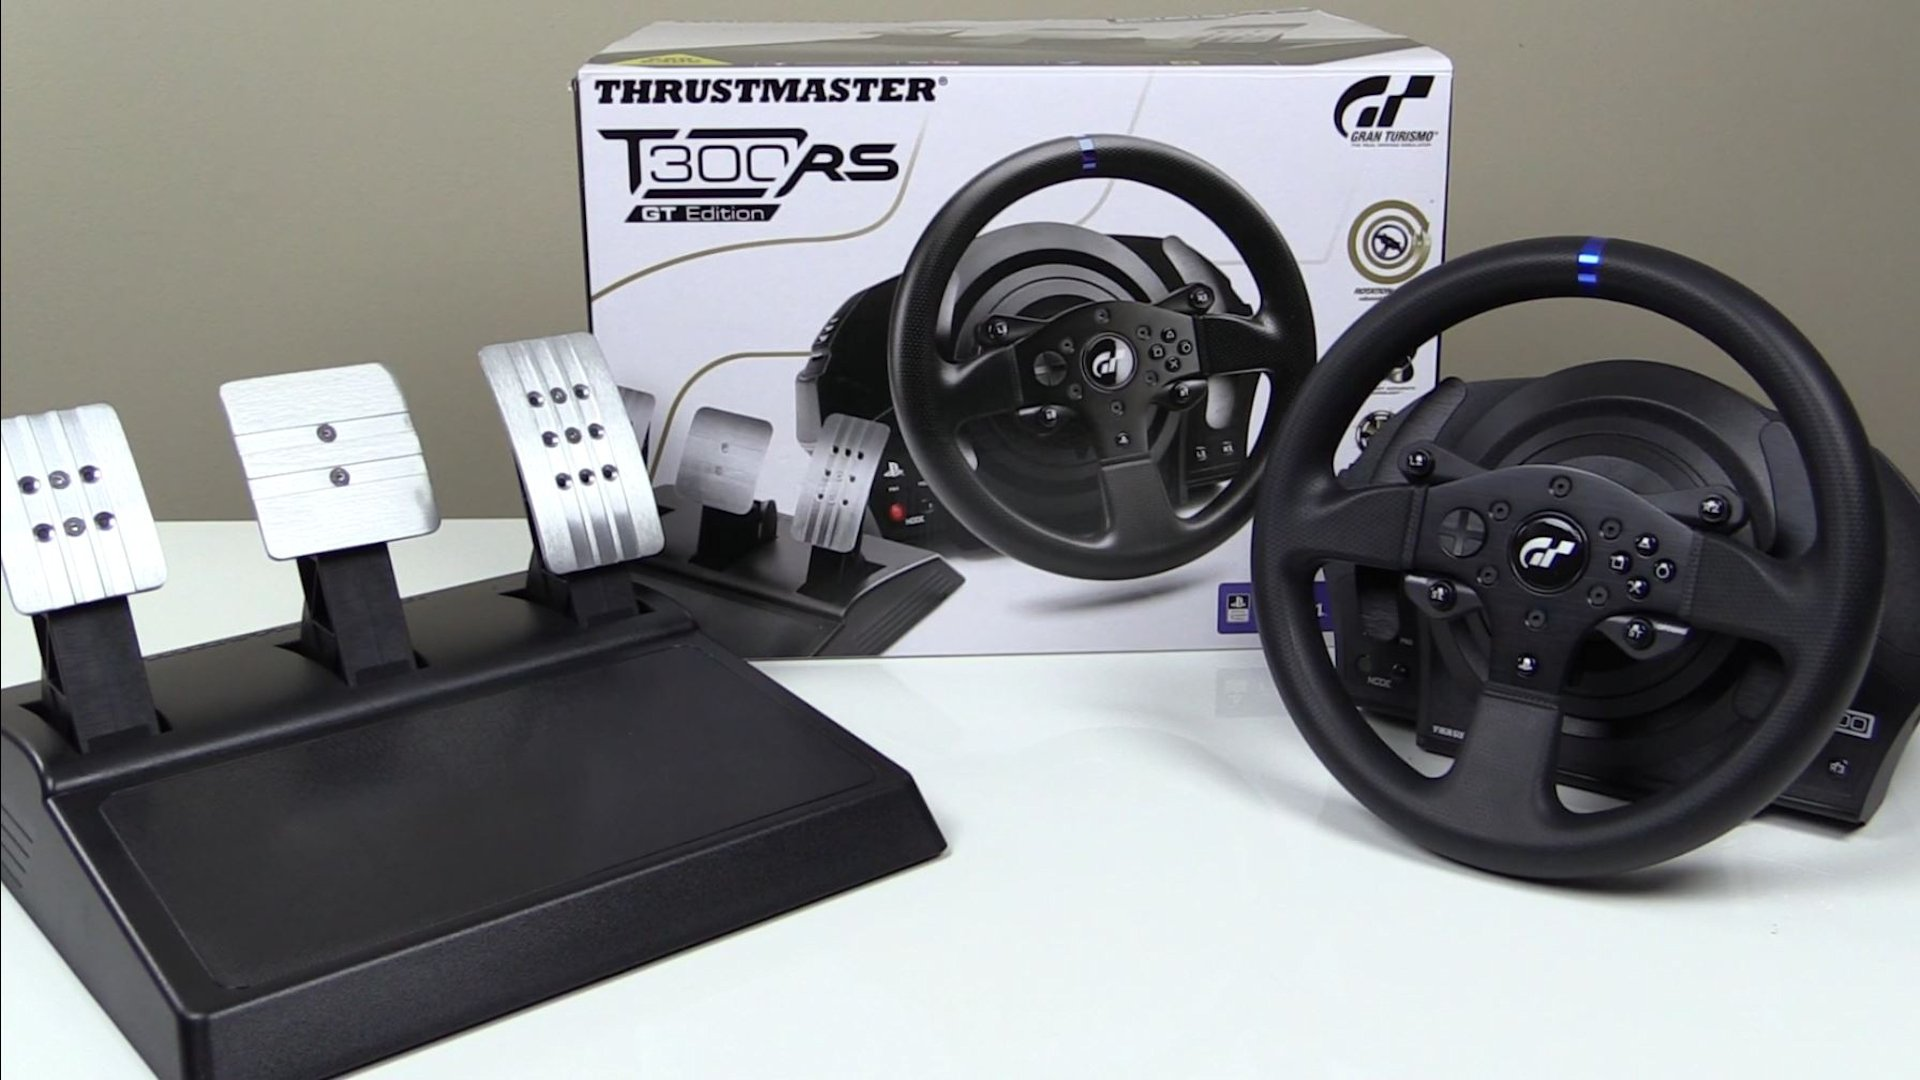 Thrustmaster T300 Gt Edition Racing Wheel And Pedals